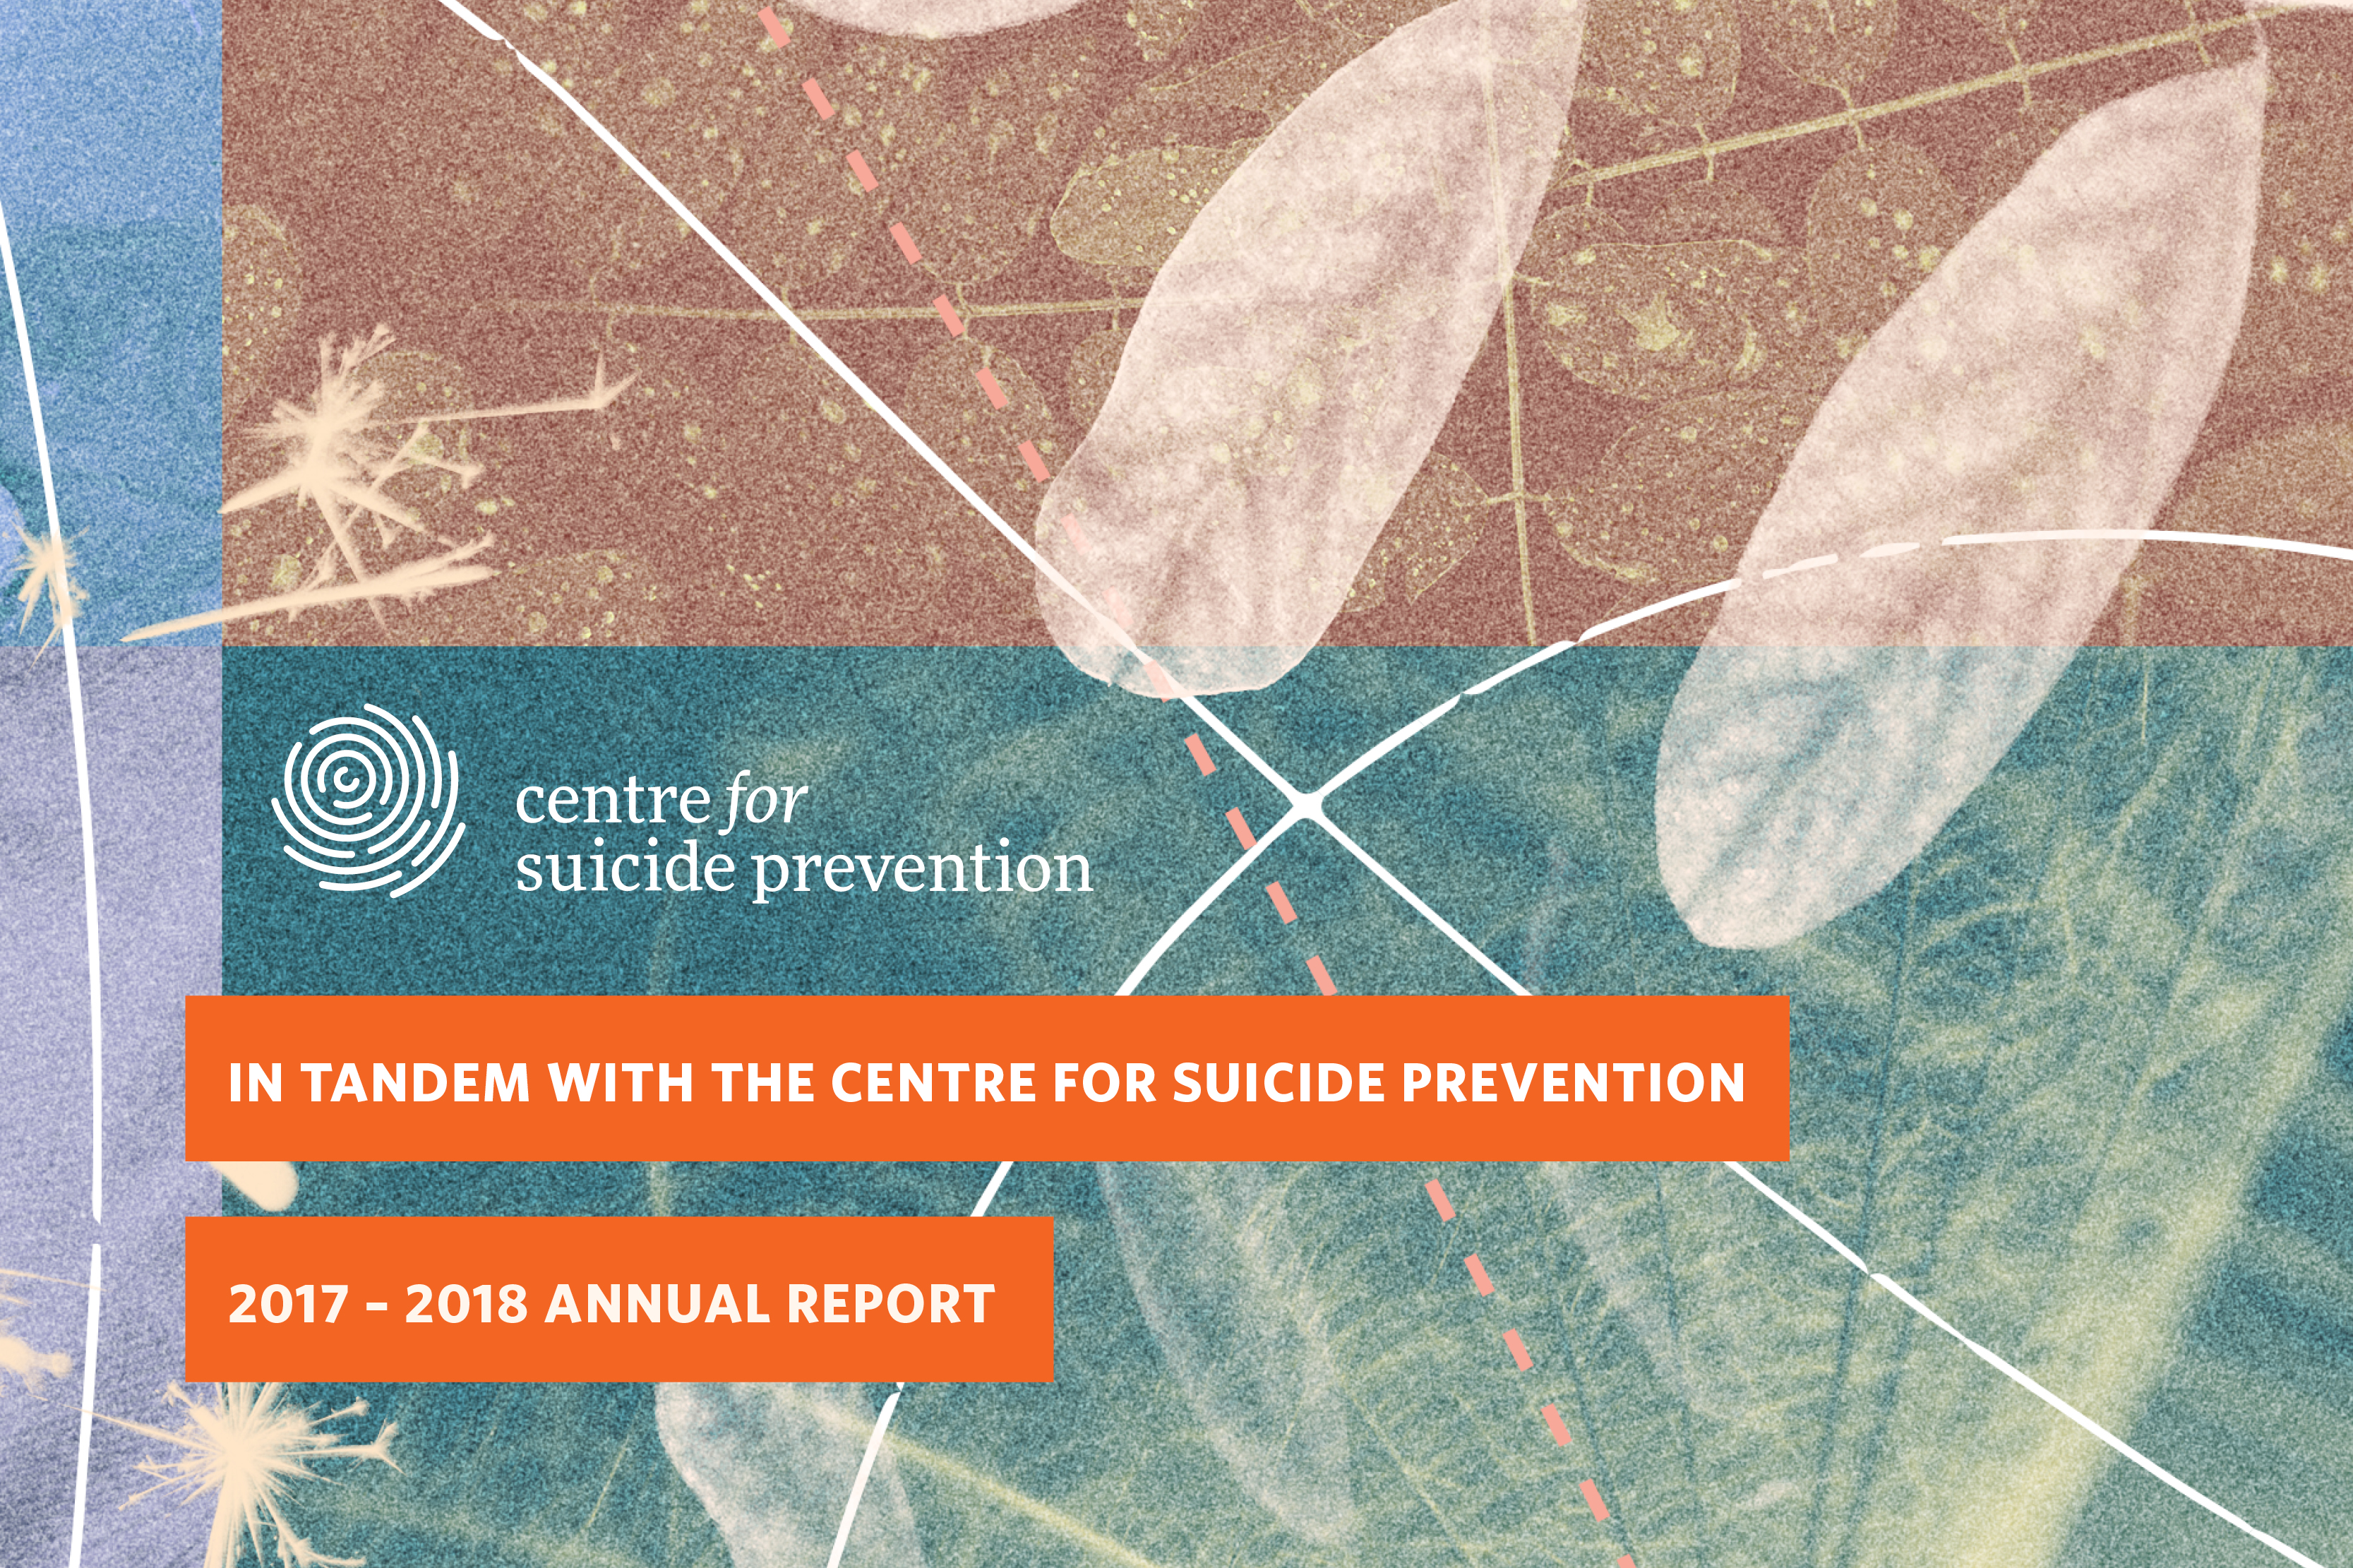 2017-18 Annual Report 2017-2018 Annual Report: In Tandem with Centre for Suicide Prevention